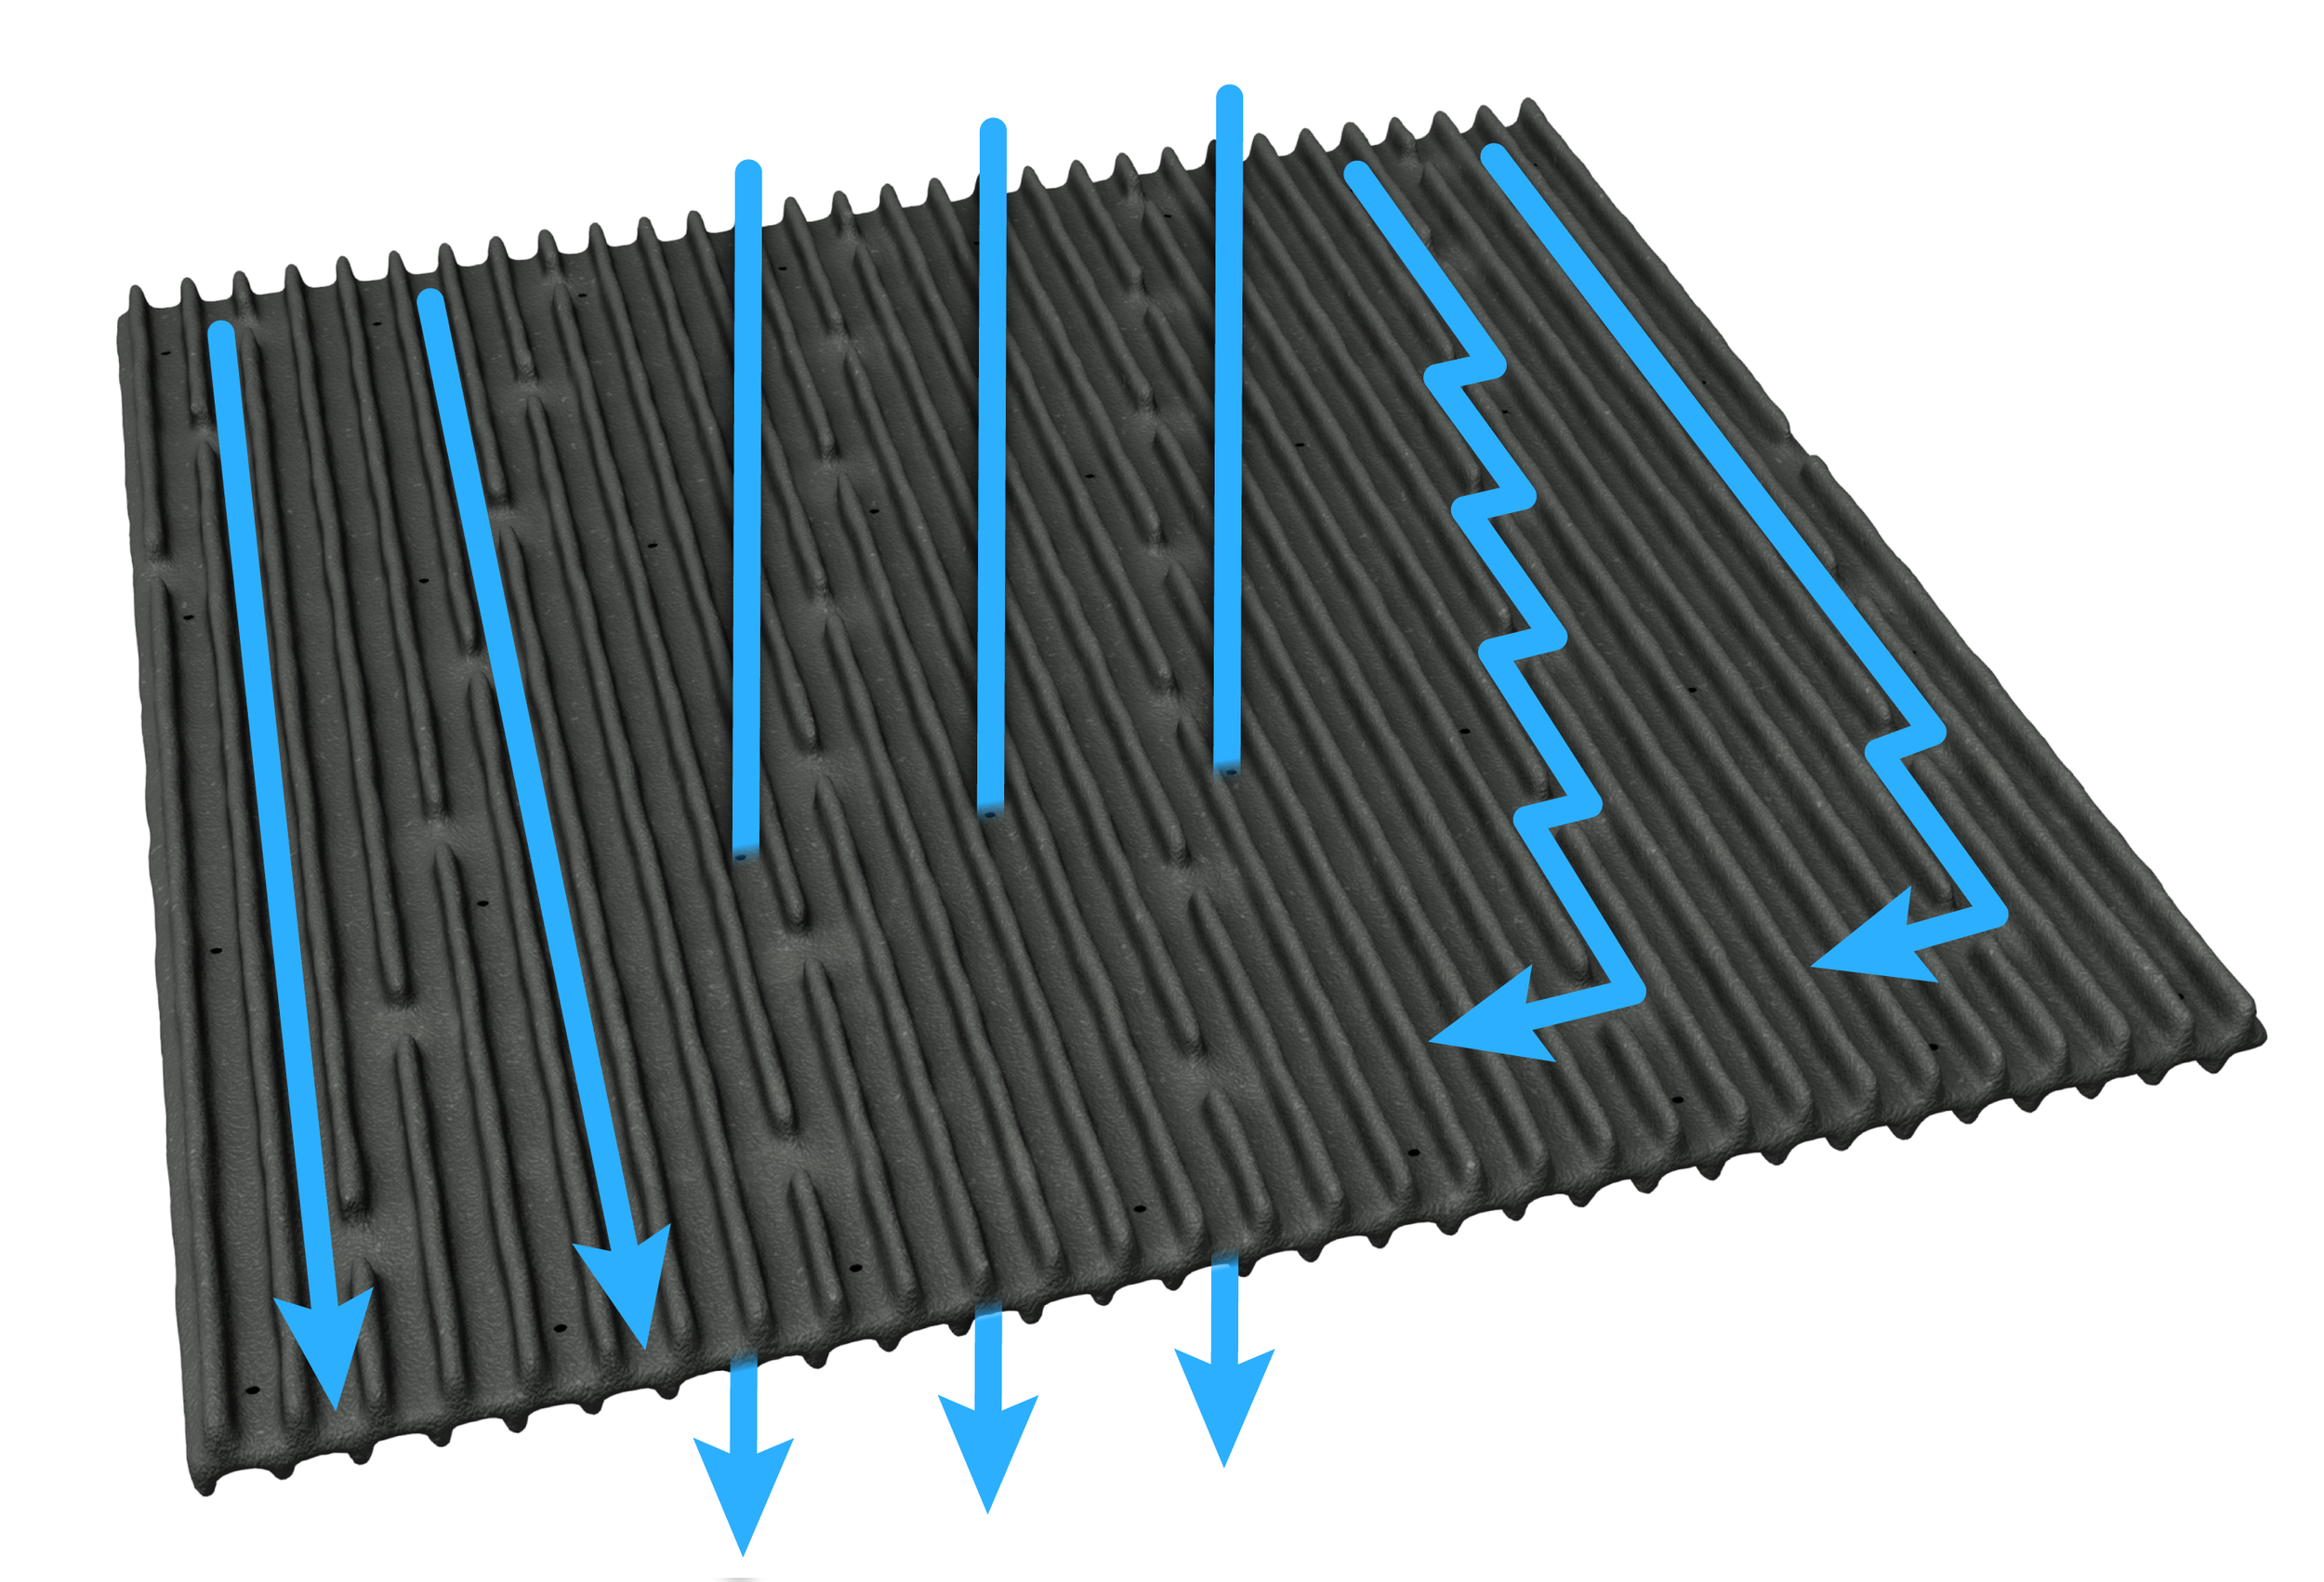 Integrated multi-directional drainage